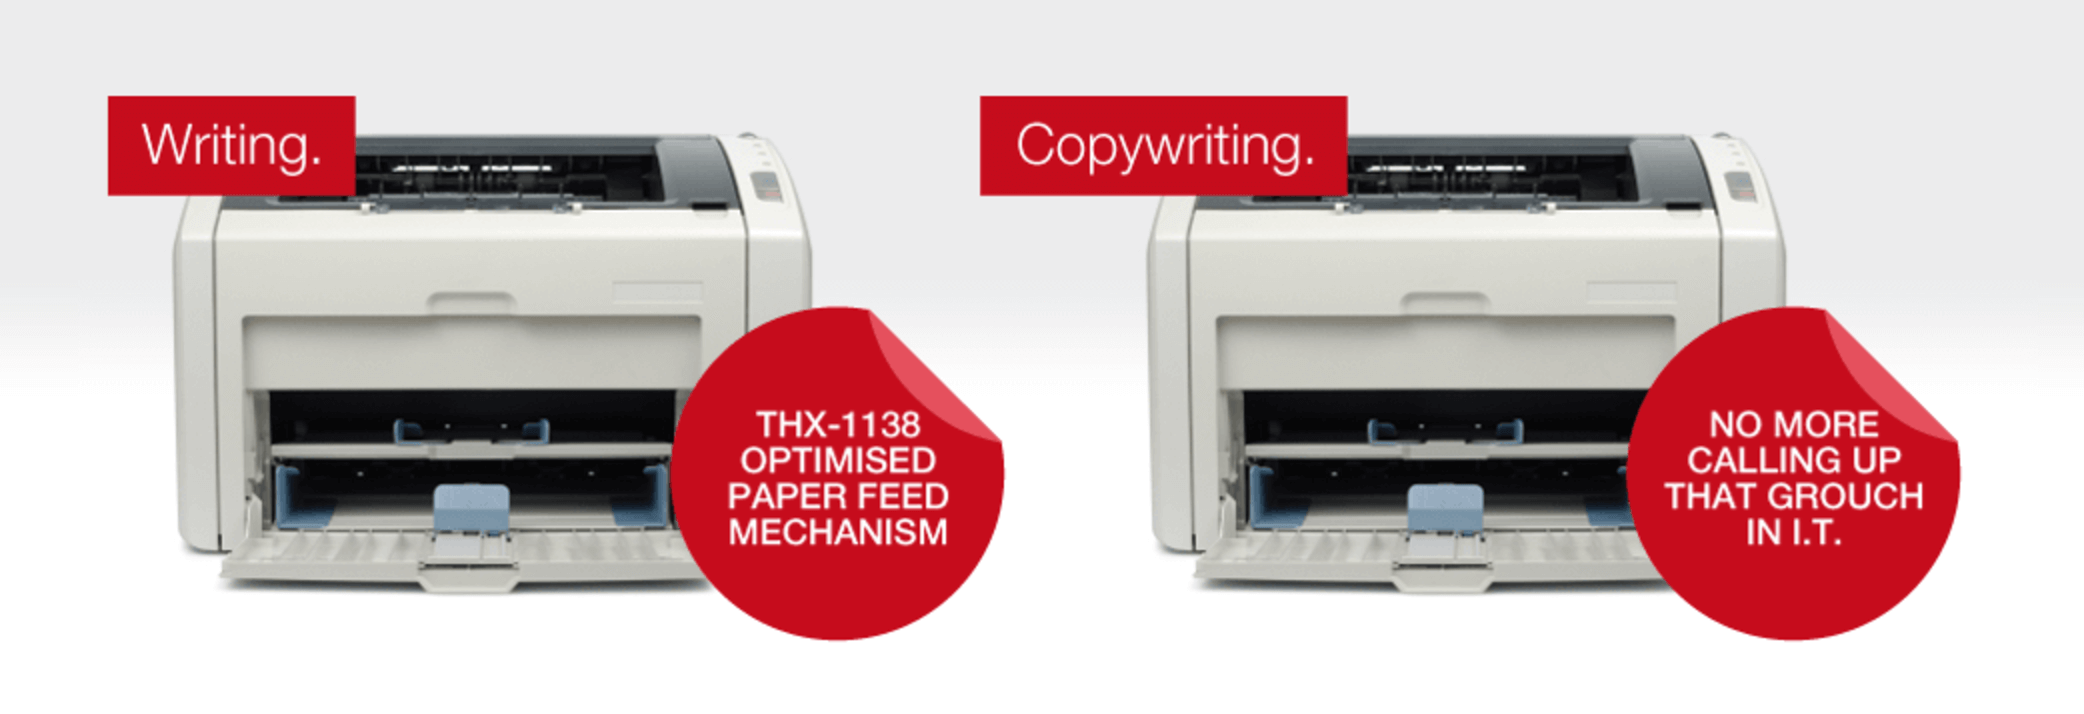 two printers with good examples of copywriting for blogging best practices